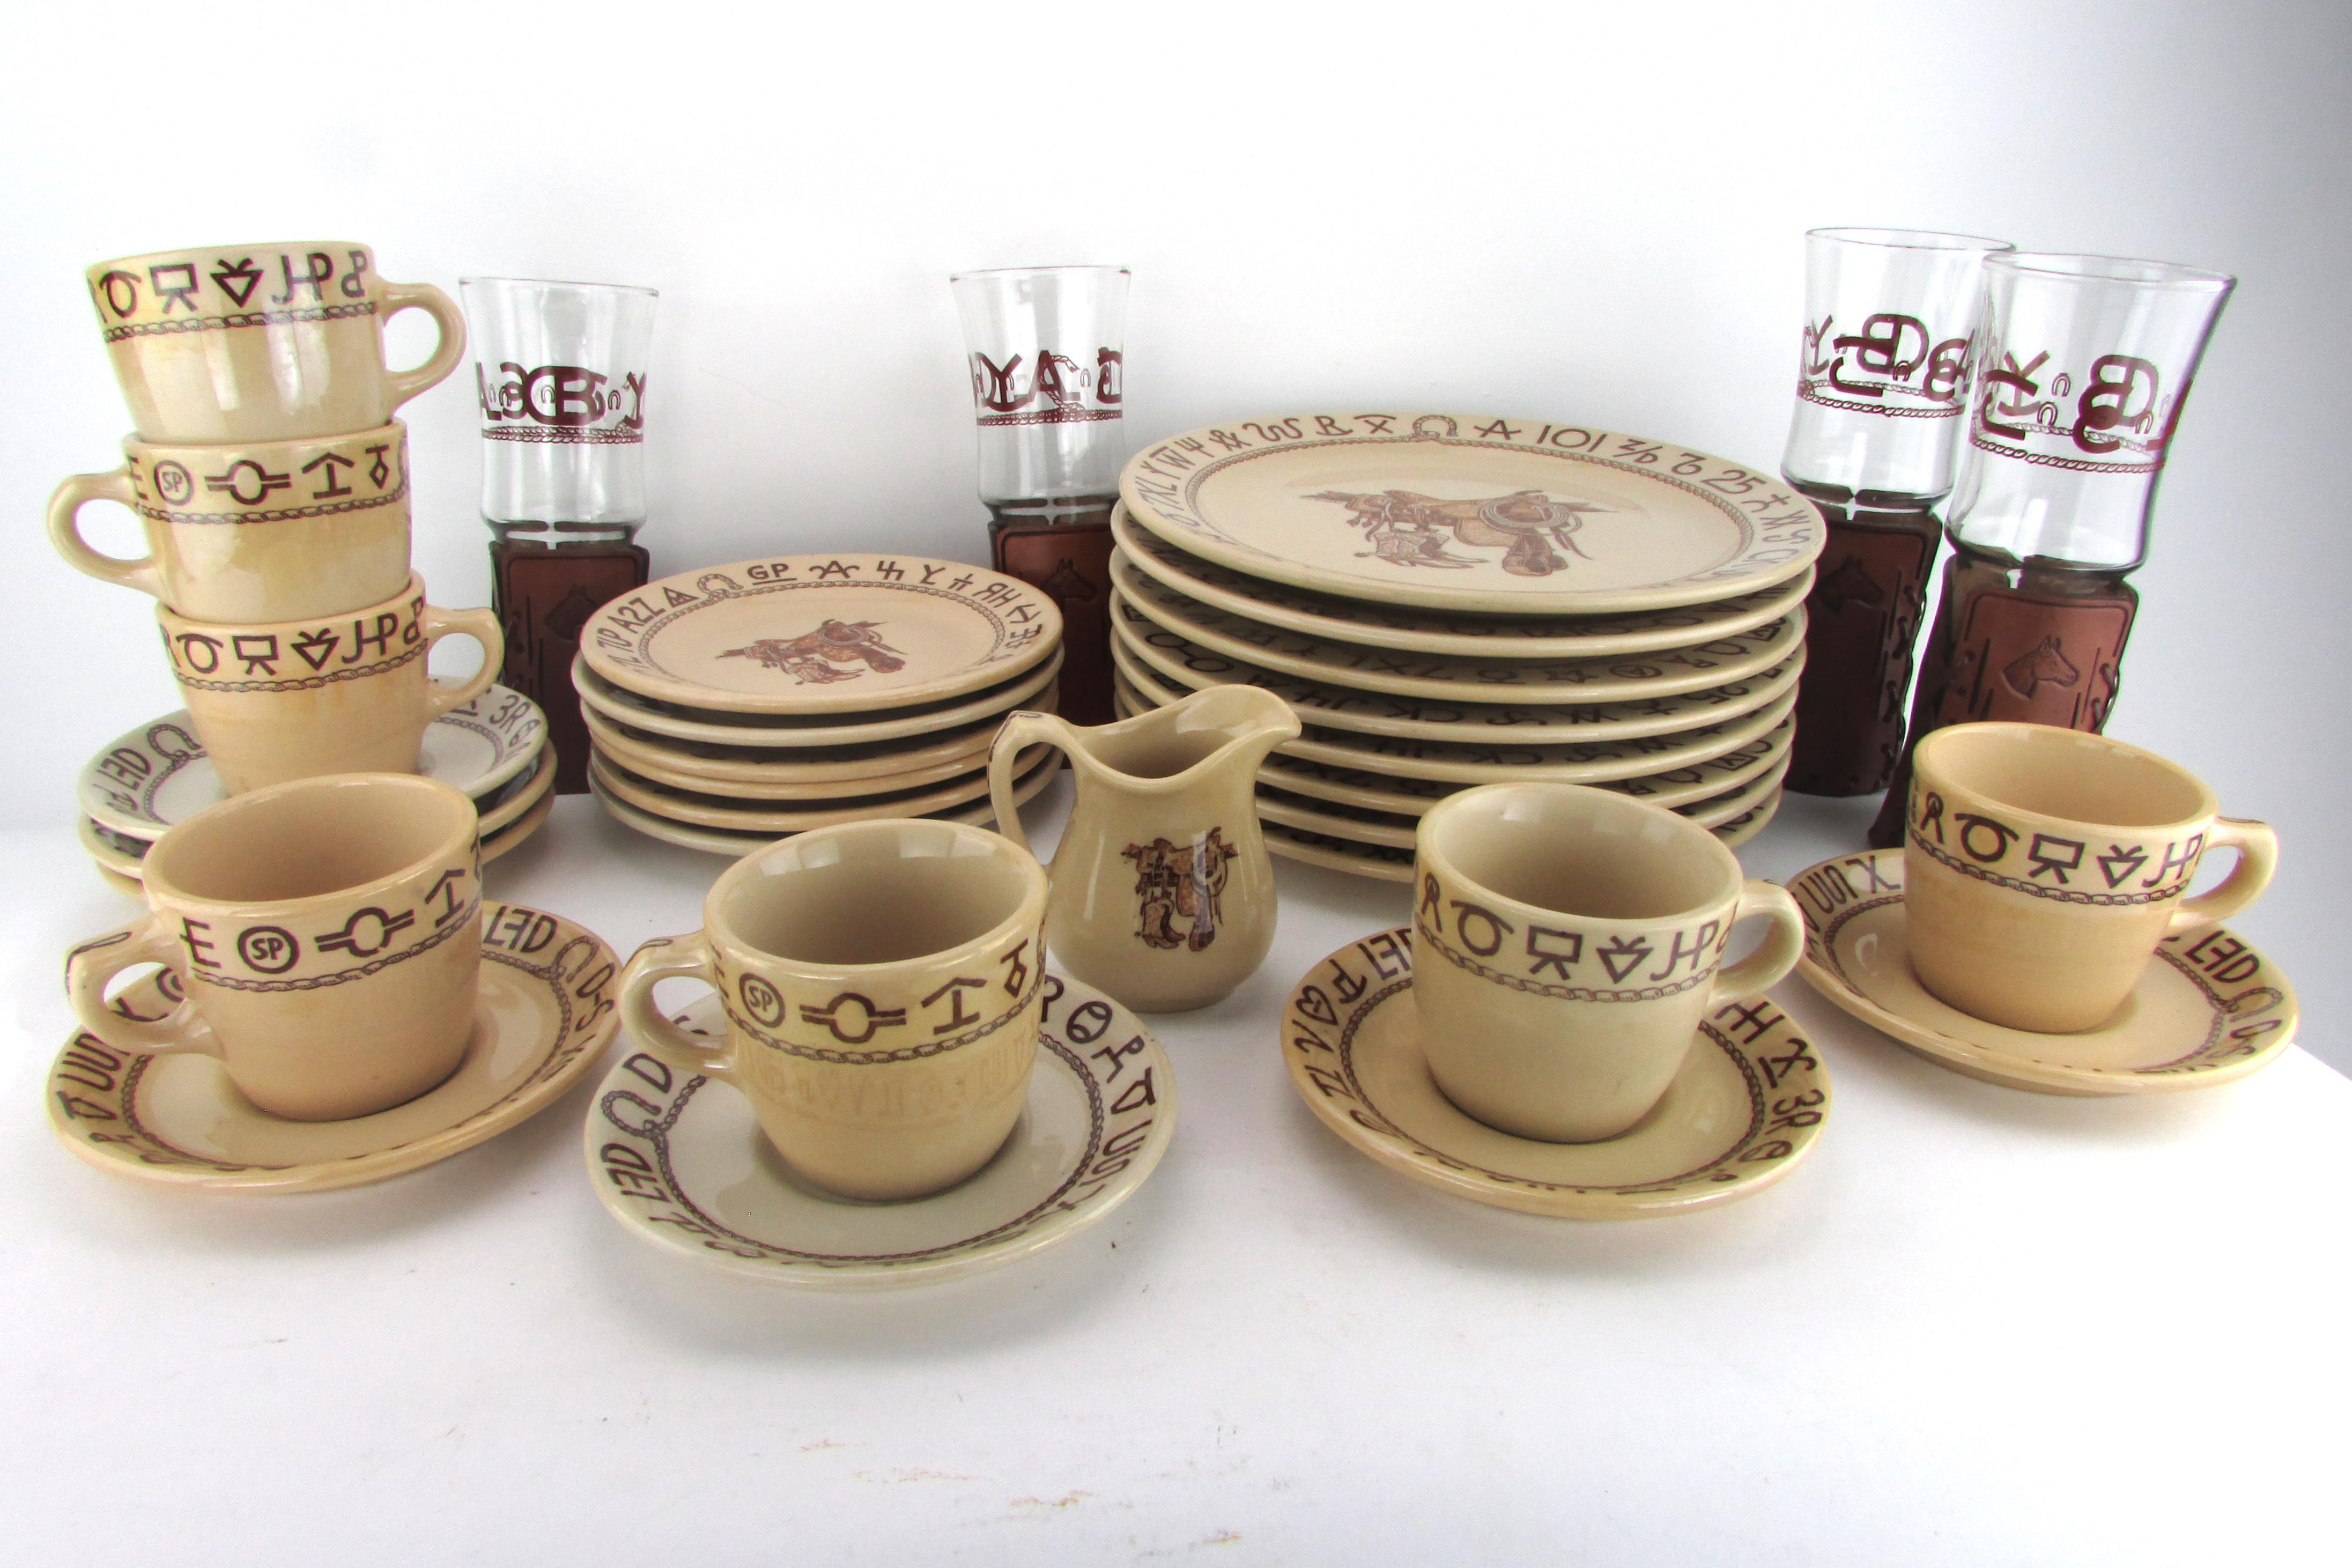 1940s Westward Ho Wallace China Dinnerware 33 Pcs W/ Leather Wrapped Glasses - Image 2  sc 1 st  Chairish & 1940s Westward Ho Wallace China Dinnerware 33 Pcs W/ Leather Wrapped ...